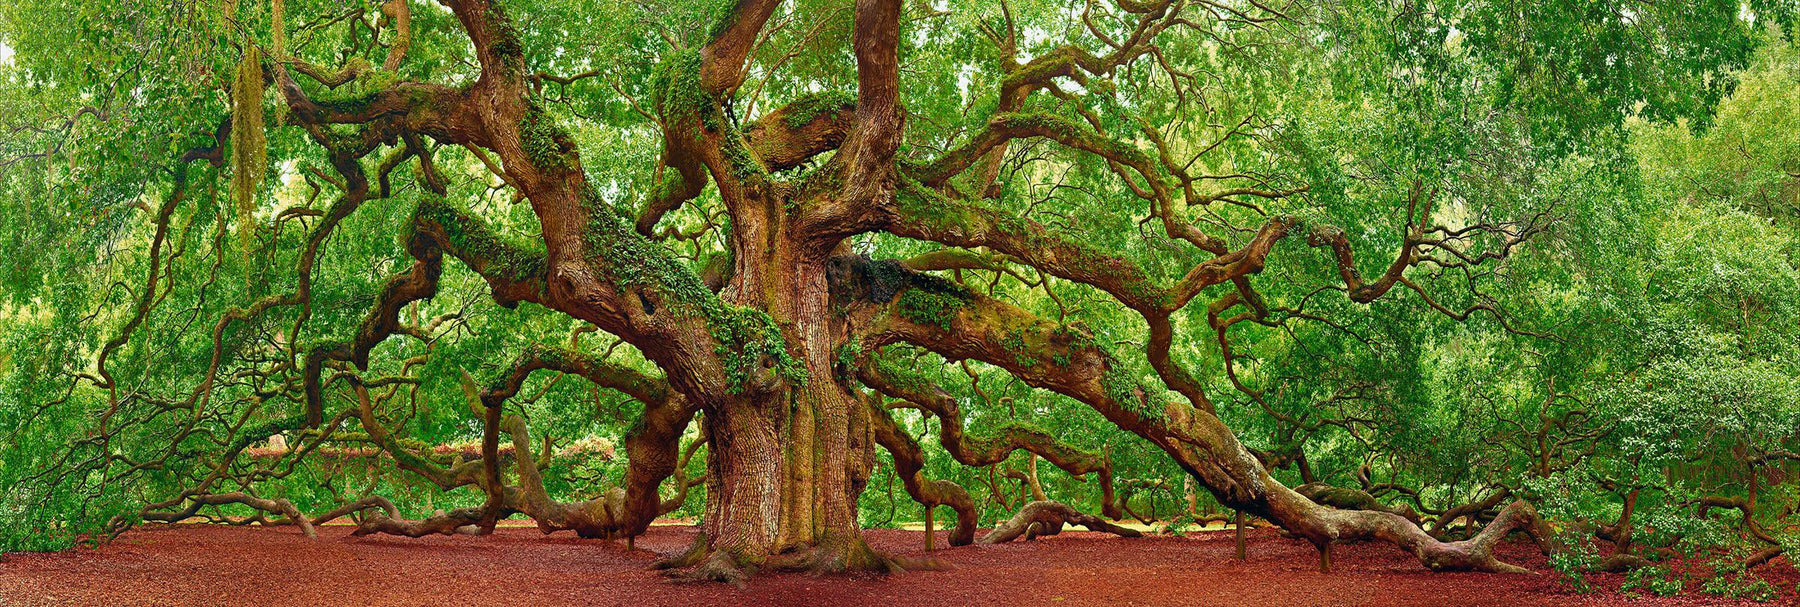 Giant Oak tree covered with ivy being held by wood posts in Charleston South Carolina